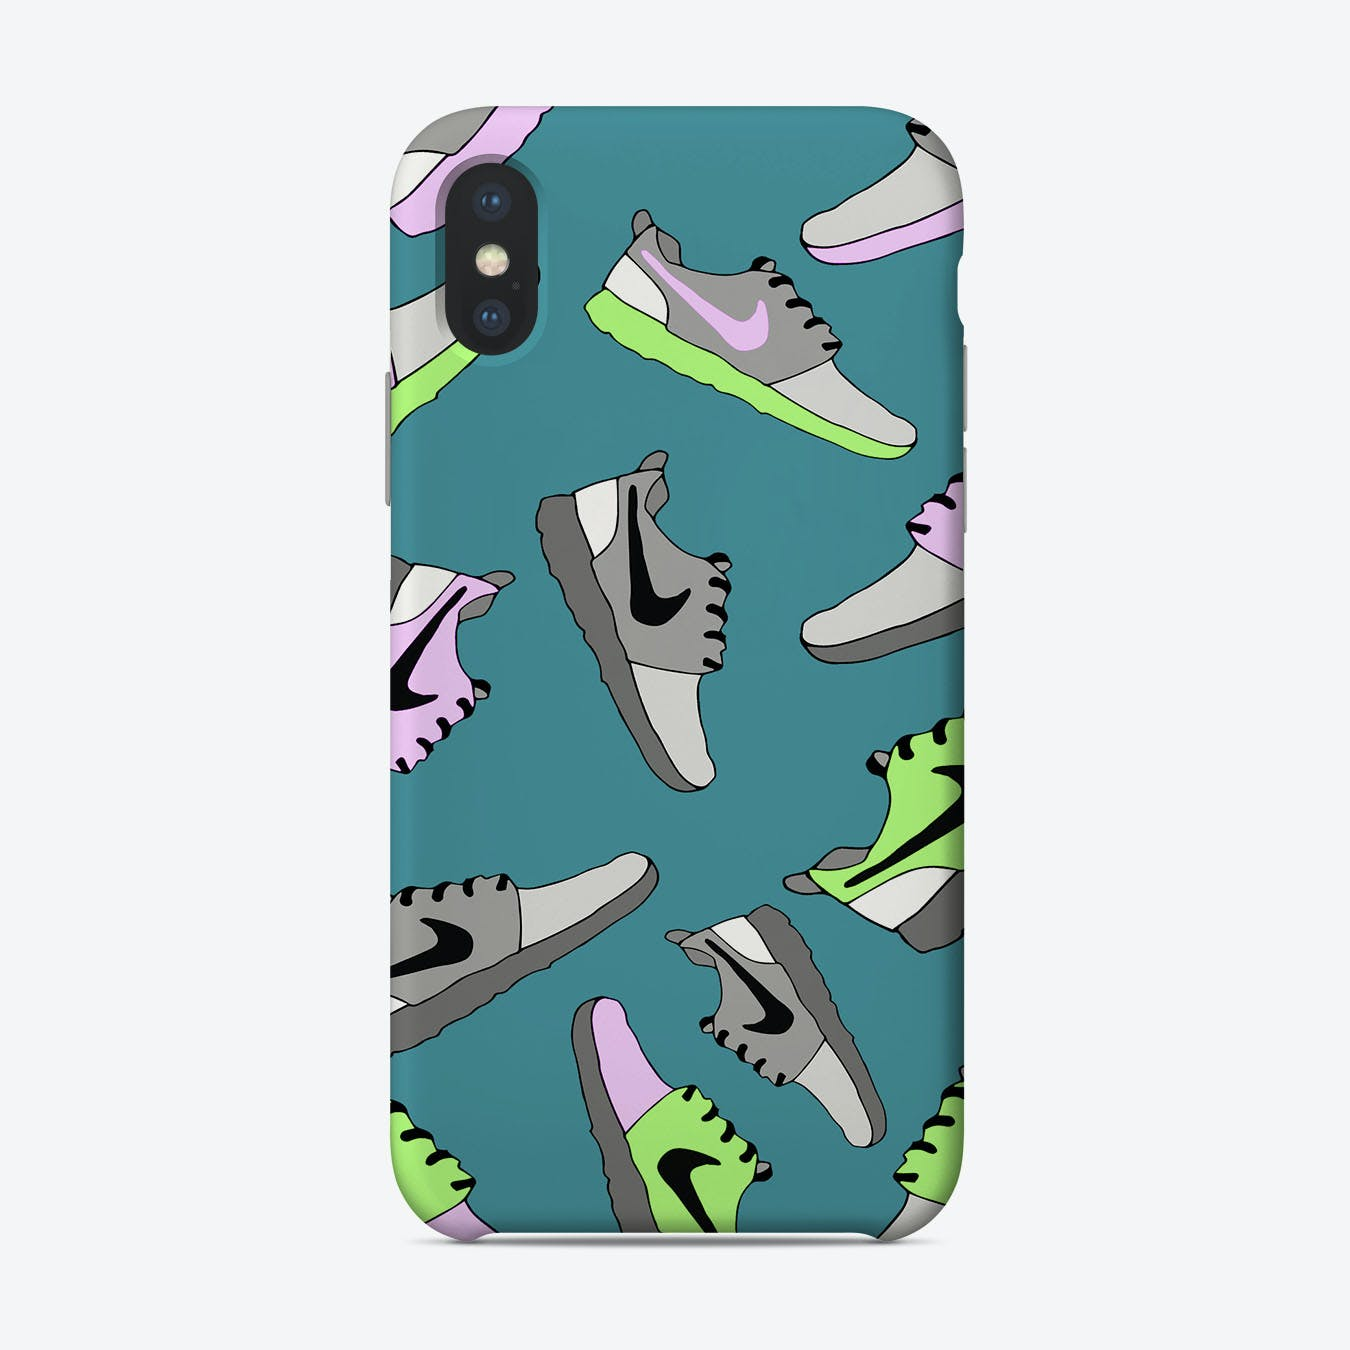 Case Nike Nar By Art Shoe Phone Fy Pop Vasare 1rHyfcH